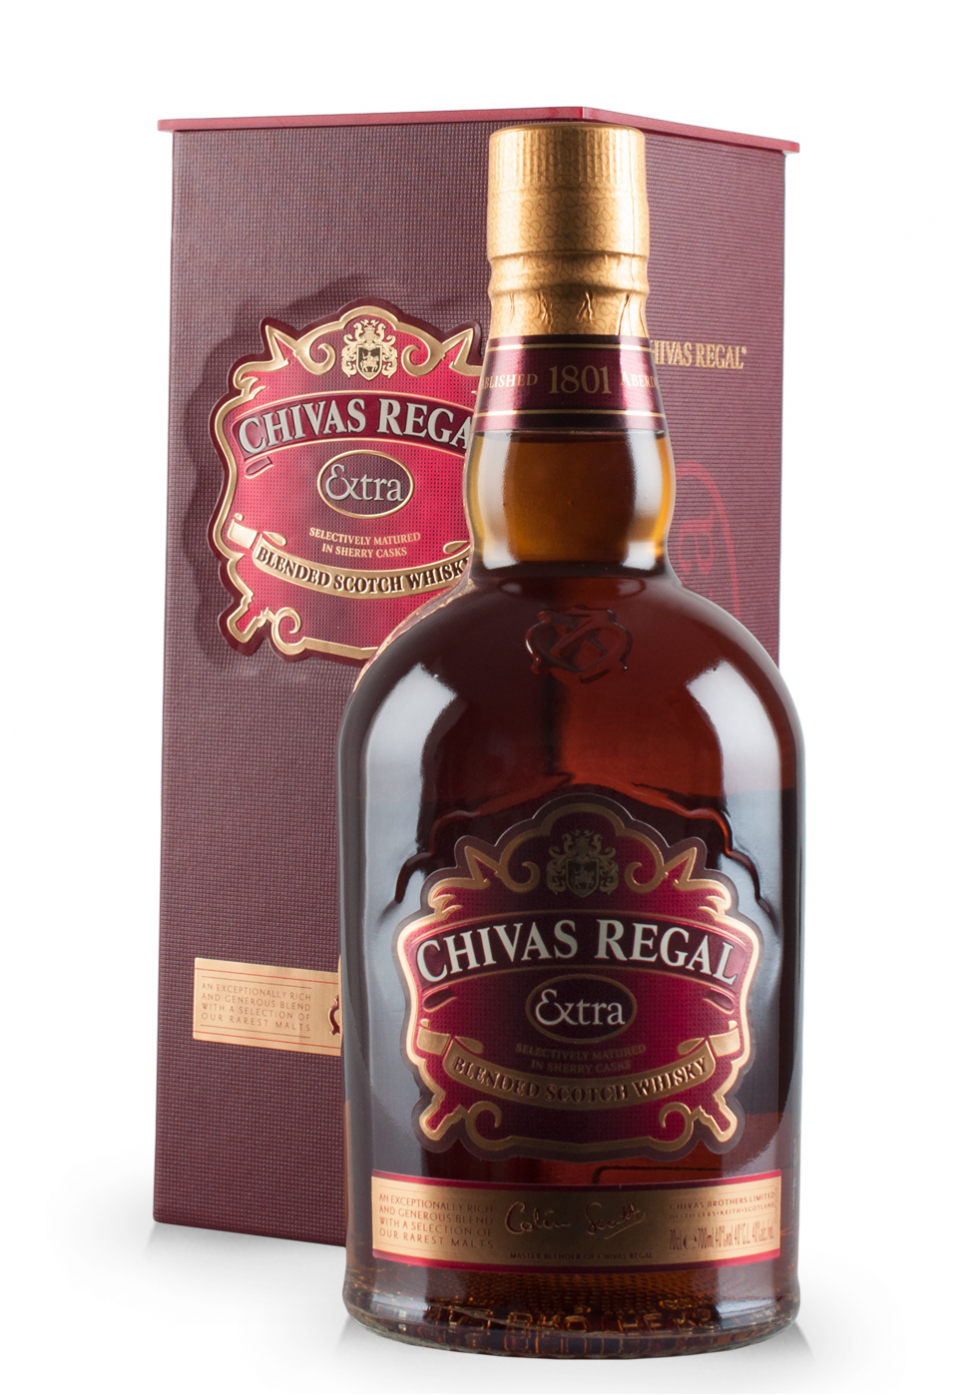 Whisky Chivas Regal Extra, Selectively matured in sherry casks (0.7L)